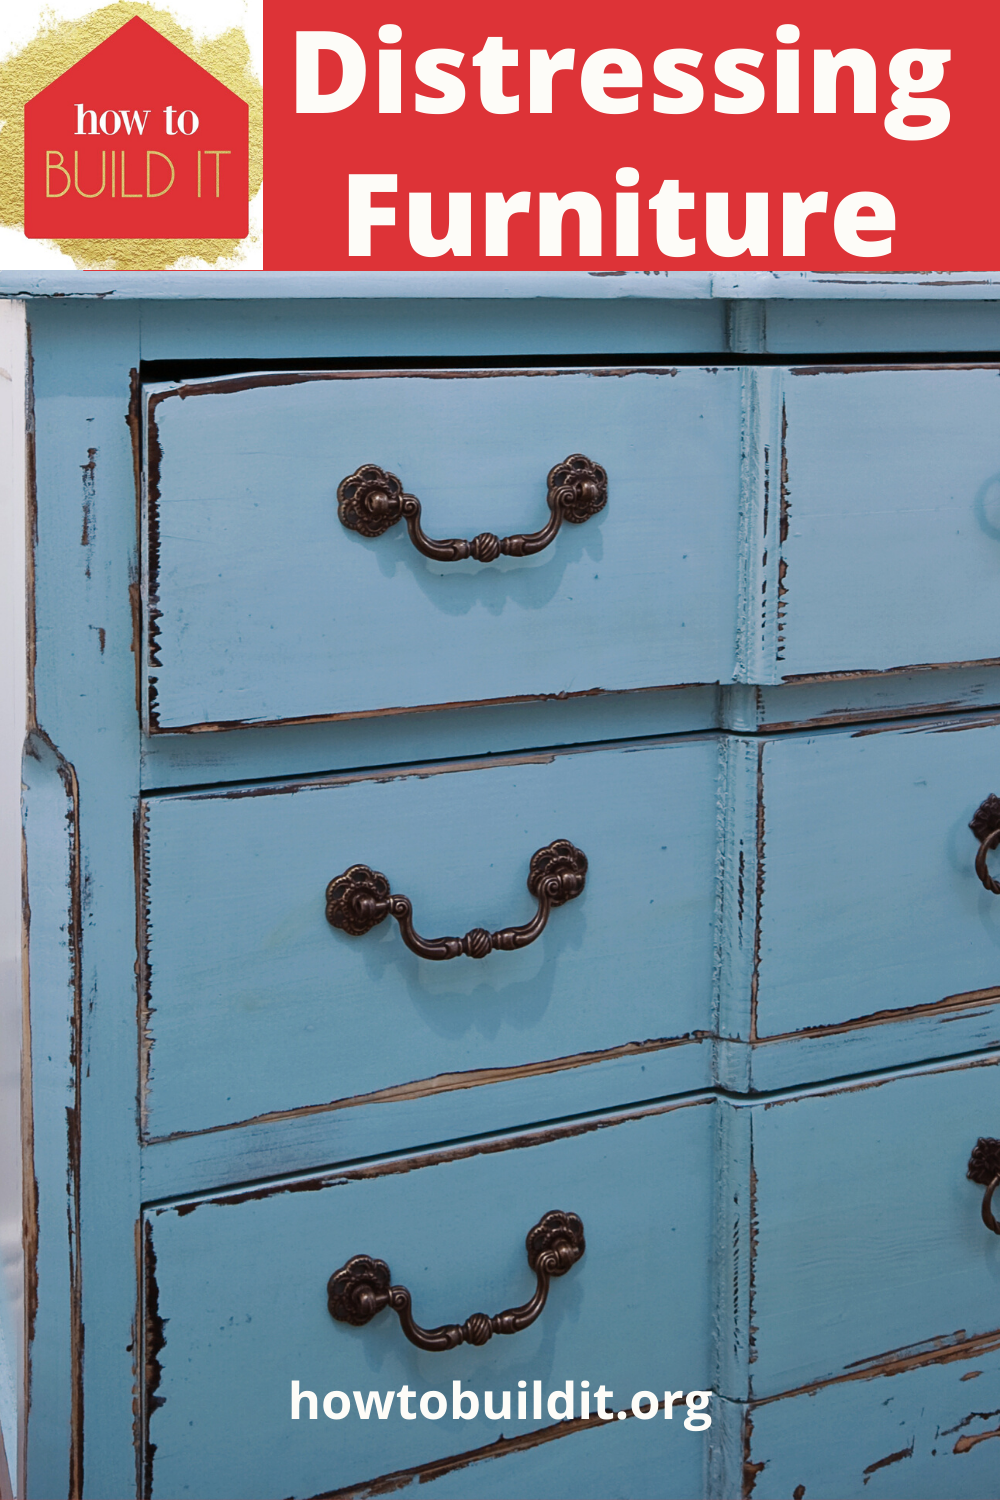 Old furniture is my favorite. I love adding my own flair with paint or stain and distressing it. The process is an easy DIY and cheap. Read the post to learn about 8 distressing furniture tips you could try today. #distressingfurniture #DIYupgrades #DIYmakeover #howtobuilditblog